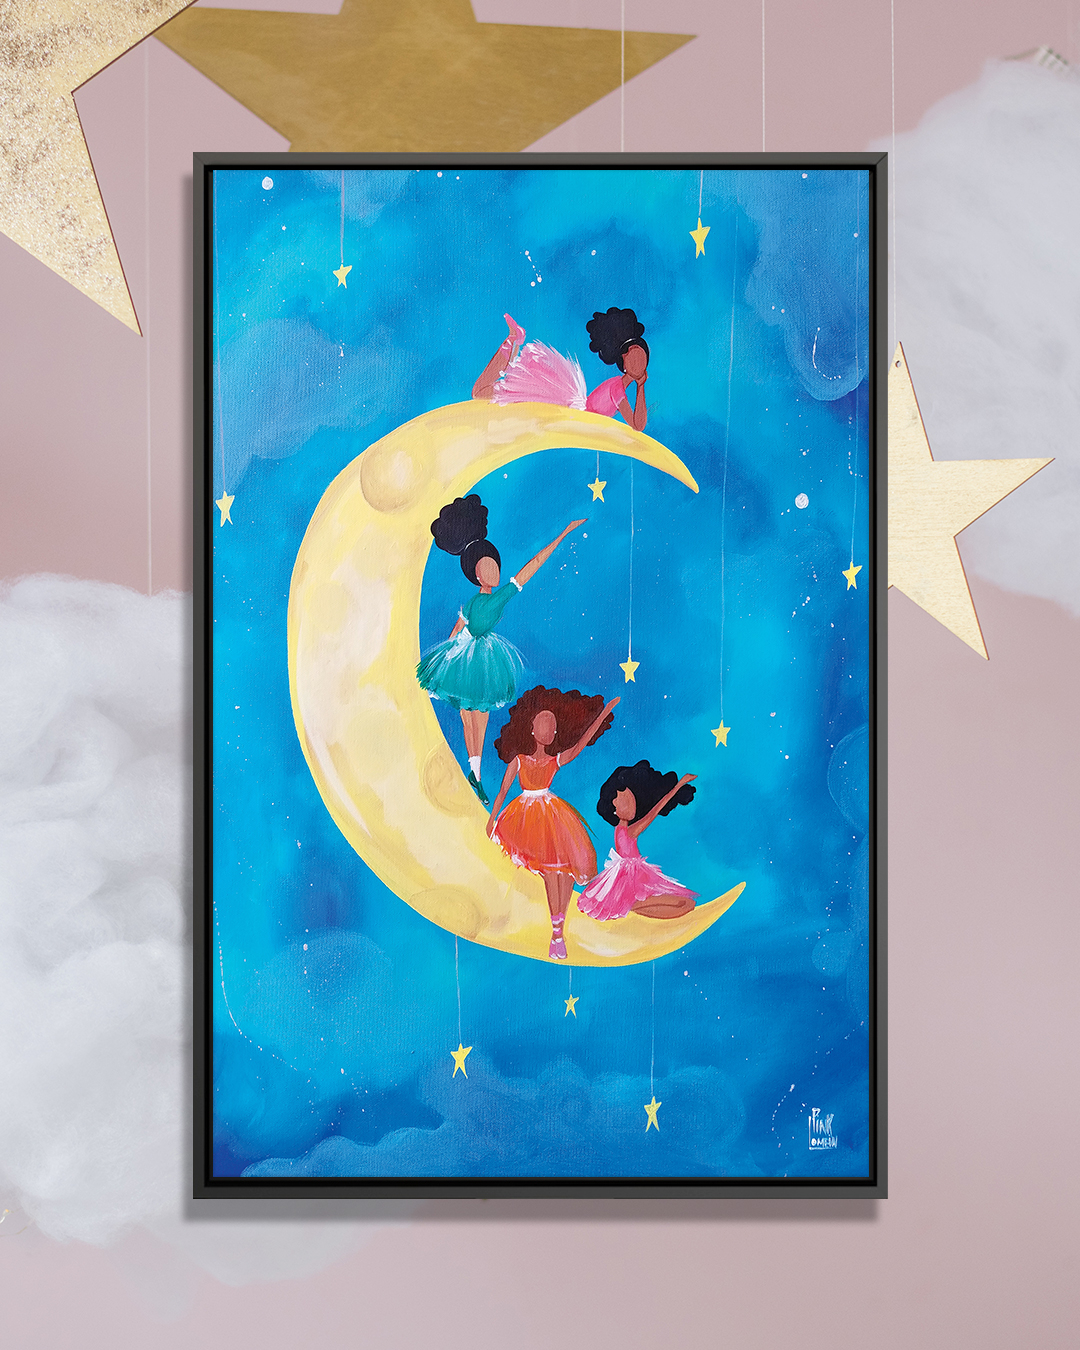 Painting of four black girls wearing pink, orange, and turquoise dresses sitting on a yellow crescent moon in blue clouds reaching for the sky